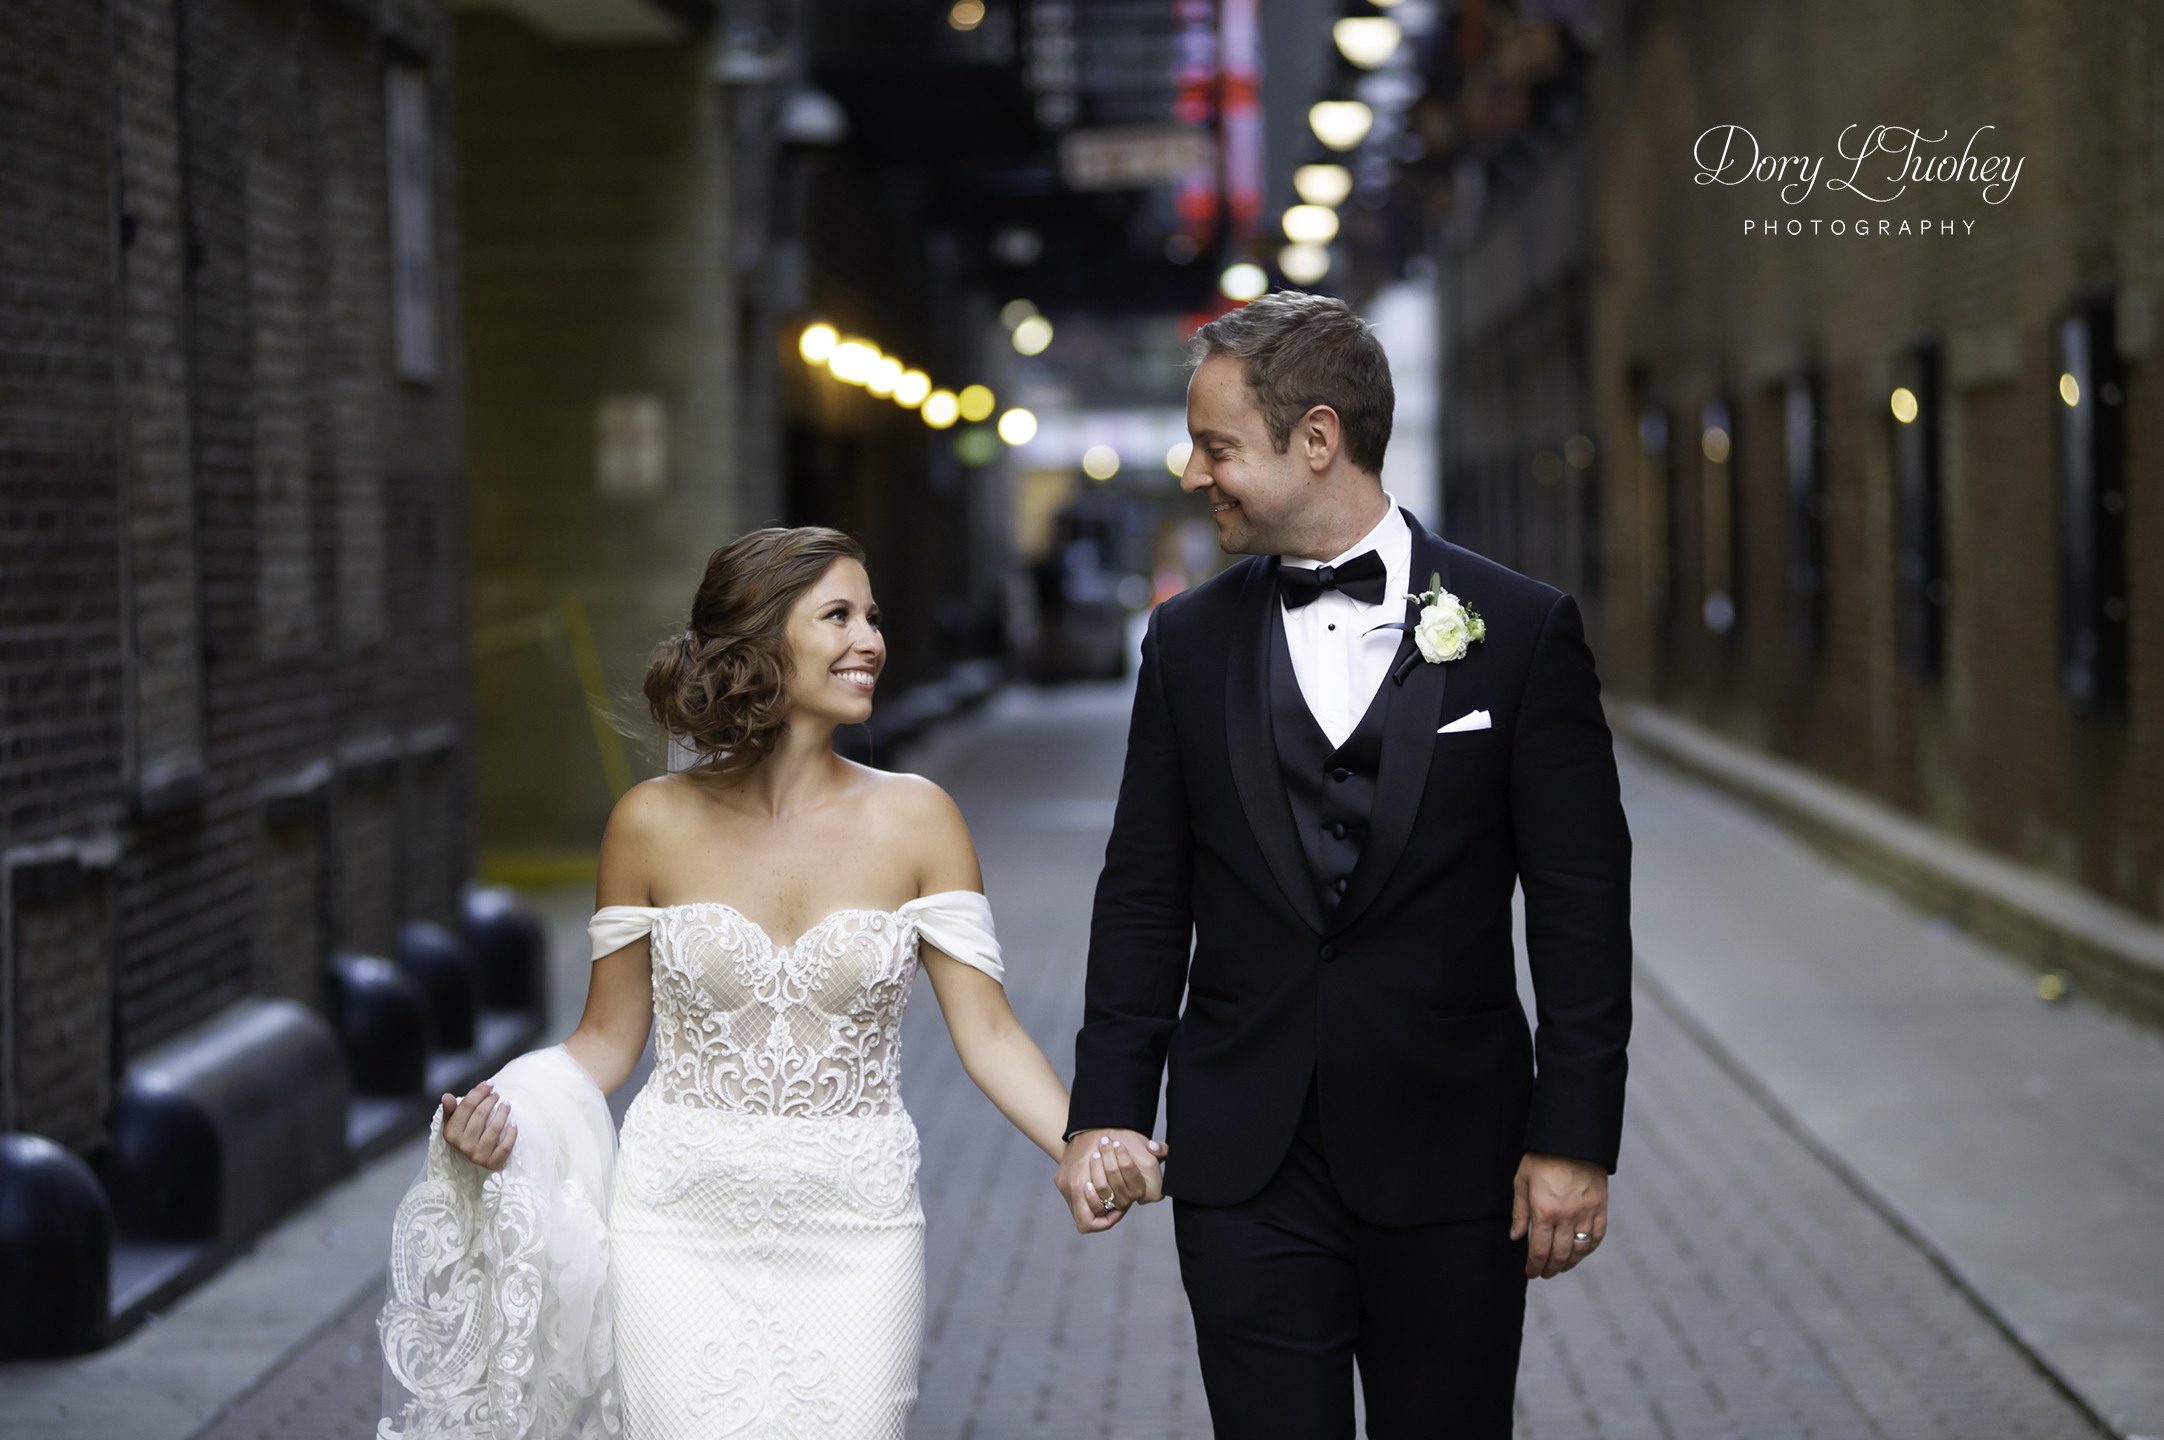 Wedding_chicago_bride_groom_photographer_wisconsin_gren_bay_wit_loyola_18.jpg